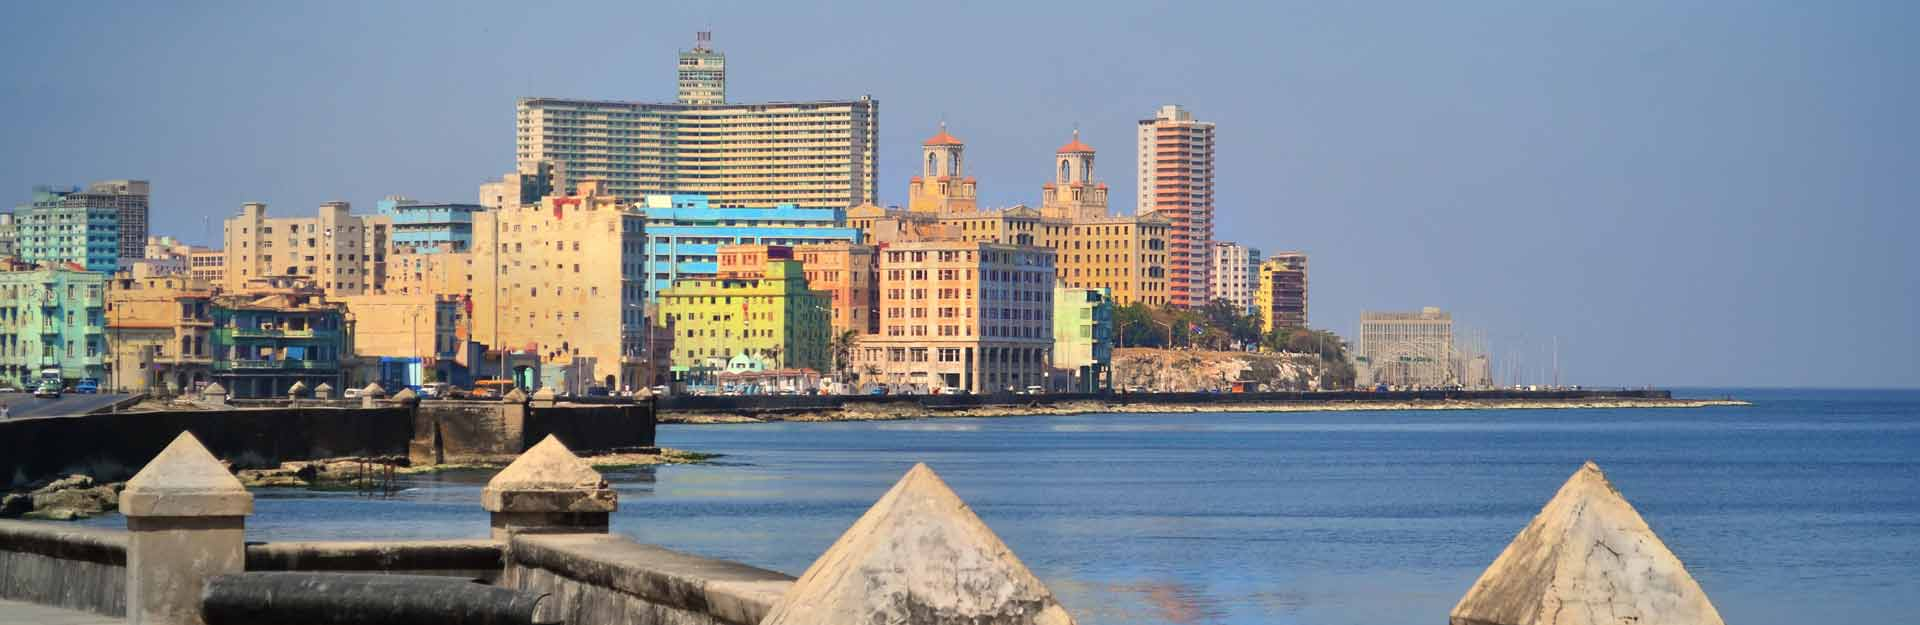 Havana, Malecon, Cuban Cities, Cuba Travel